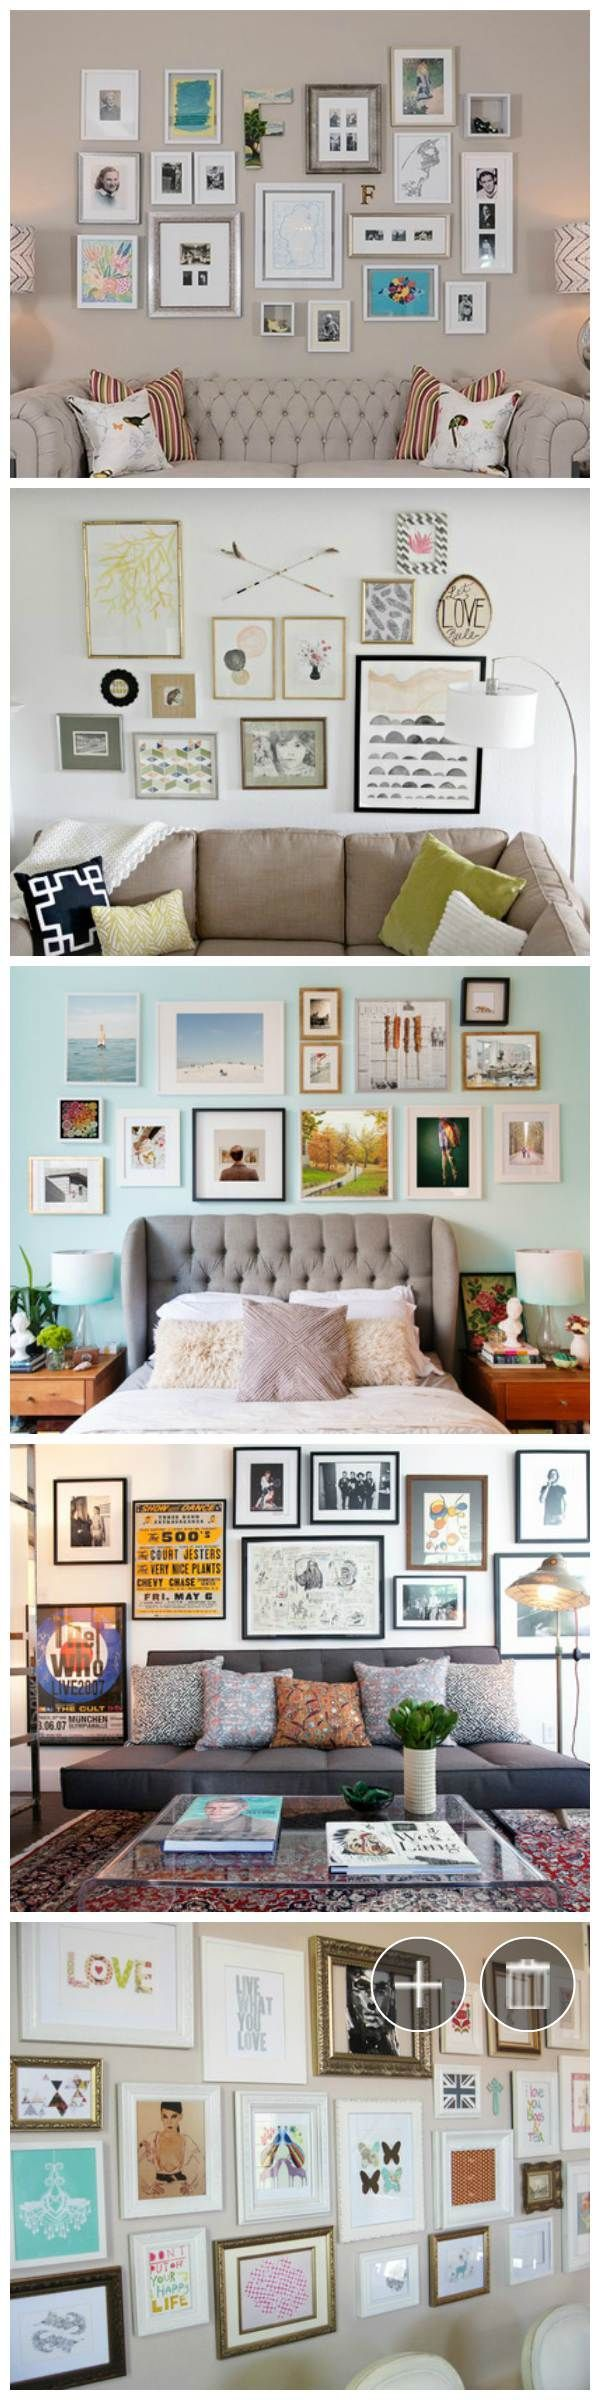 Making An Art Gallery Style Wall In Your Home Is One Of The Hardest Things